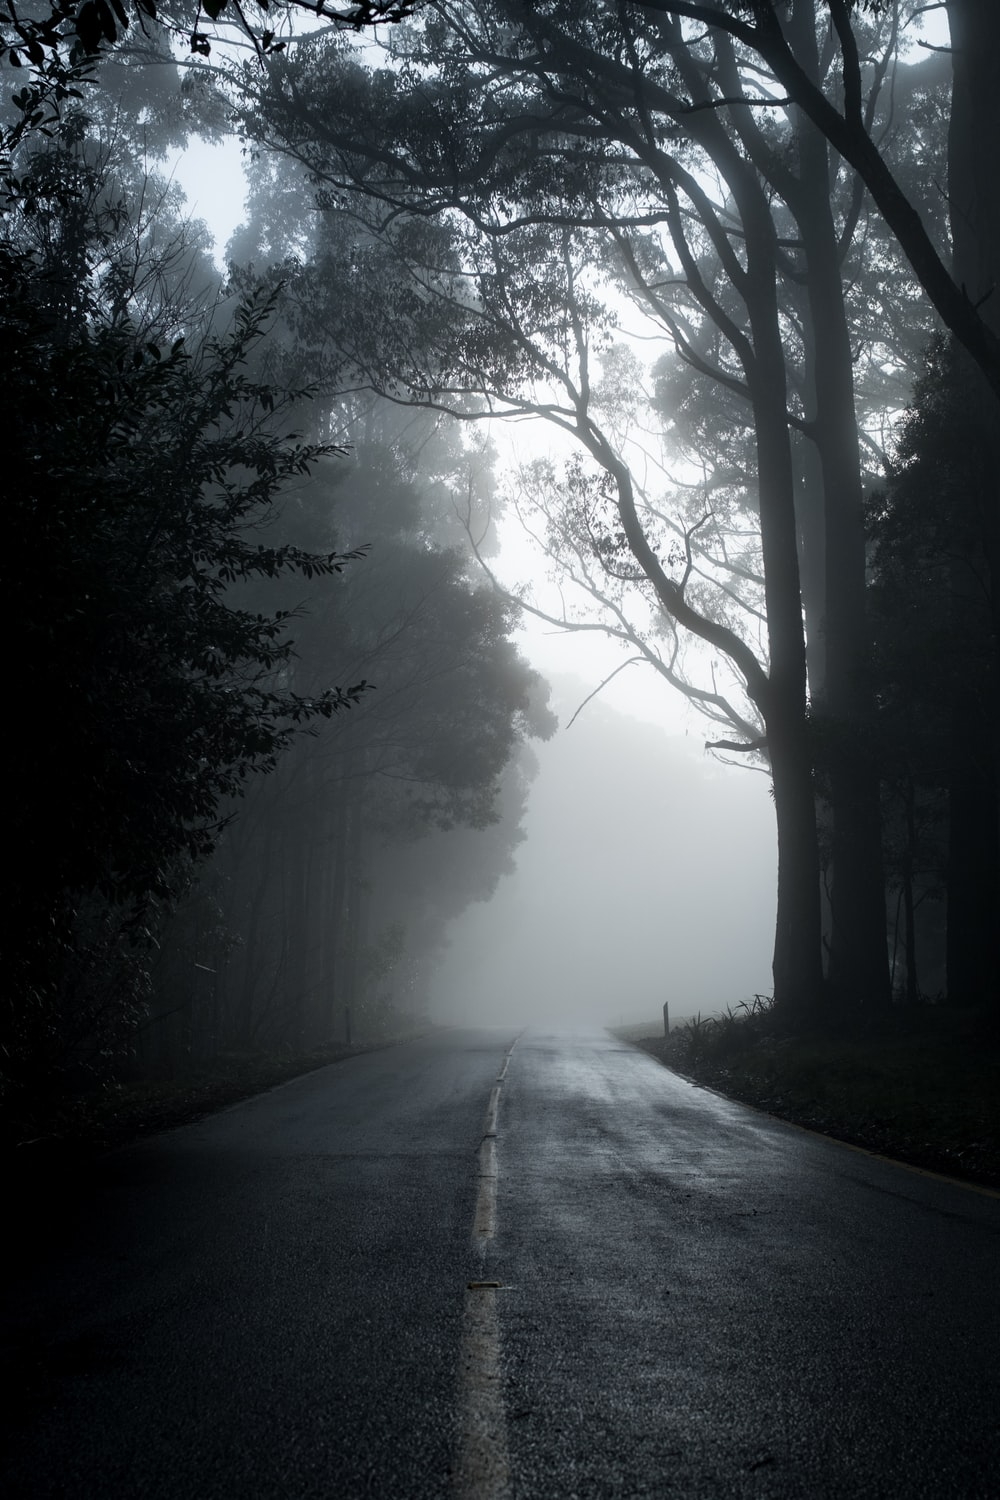 gray road in between trees in grayscale photography